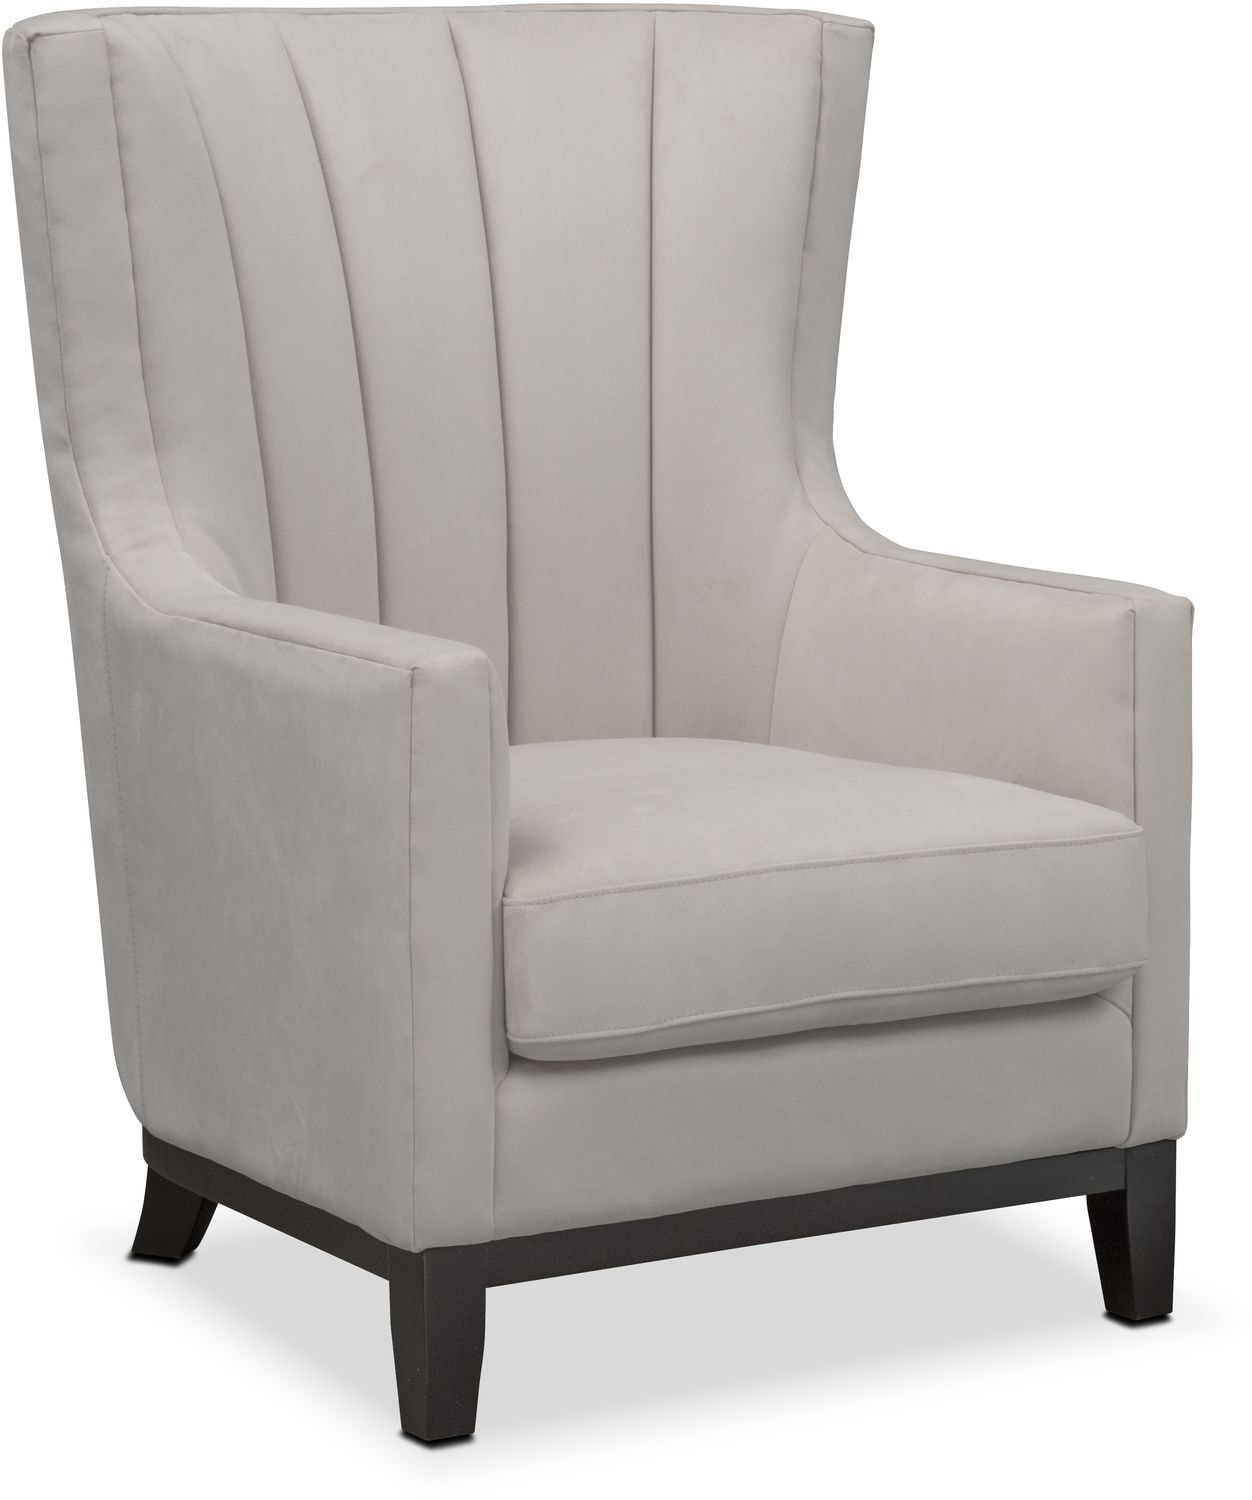 Exceptional ... Chair   Light Gray. Hover To Zoom